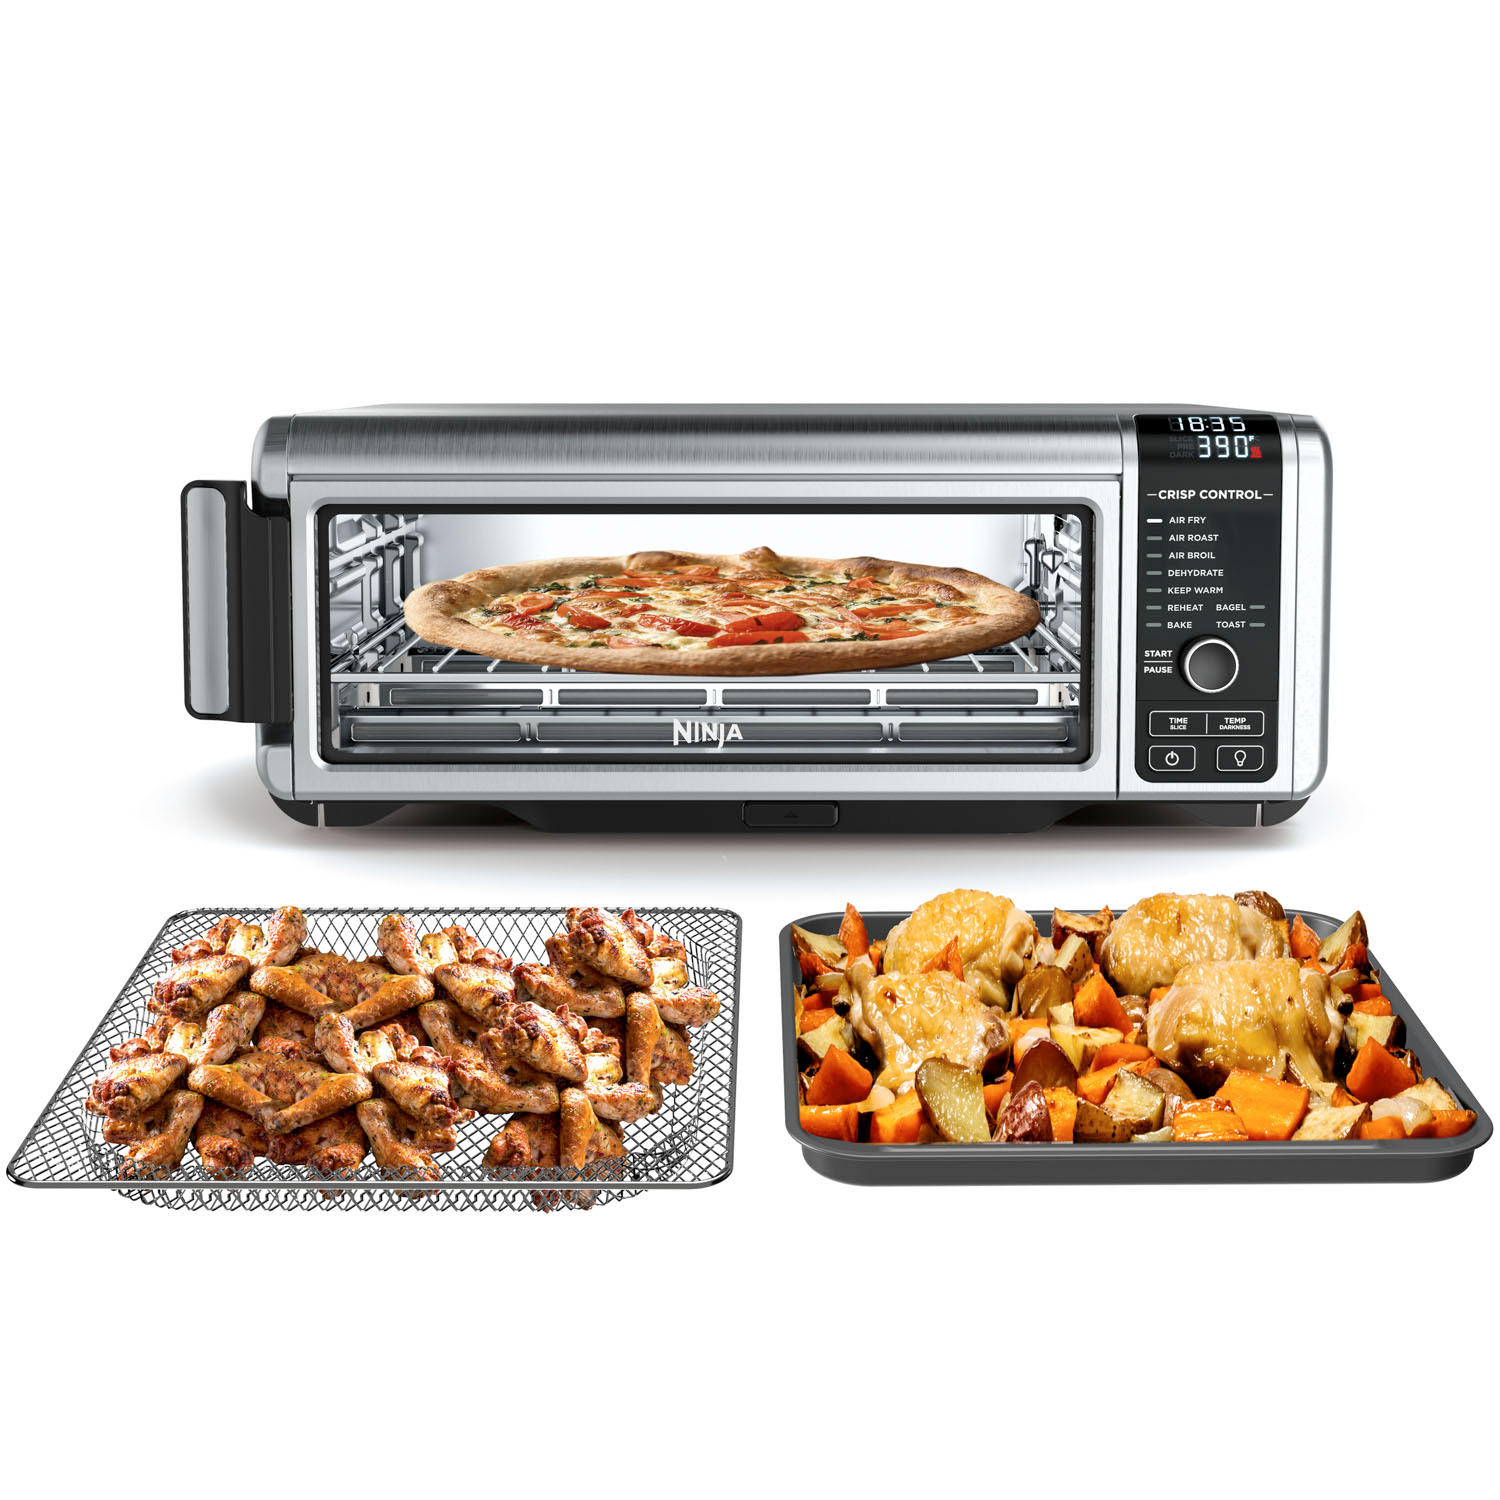 Ninja FT102A Foodi 9-in-1 Digital Air Fry Oven with Convection Oven, Toaster, Air Fryer